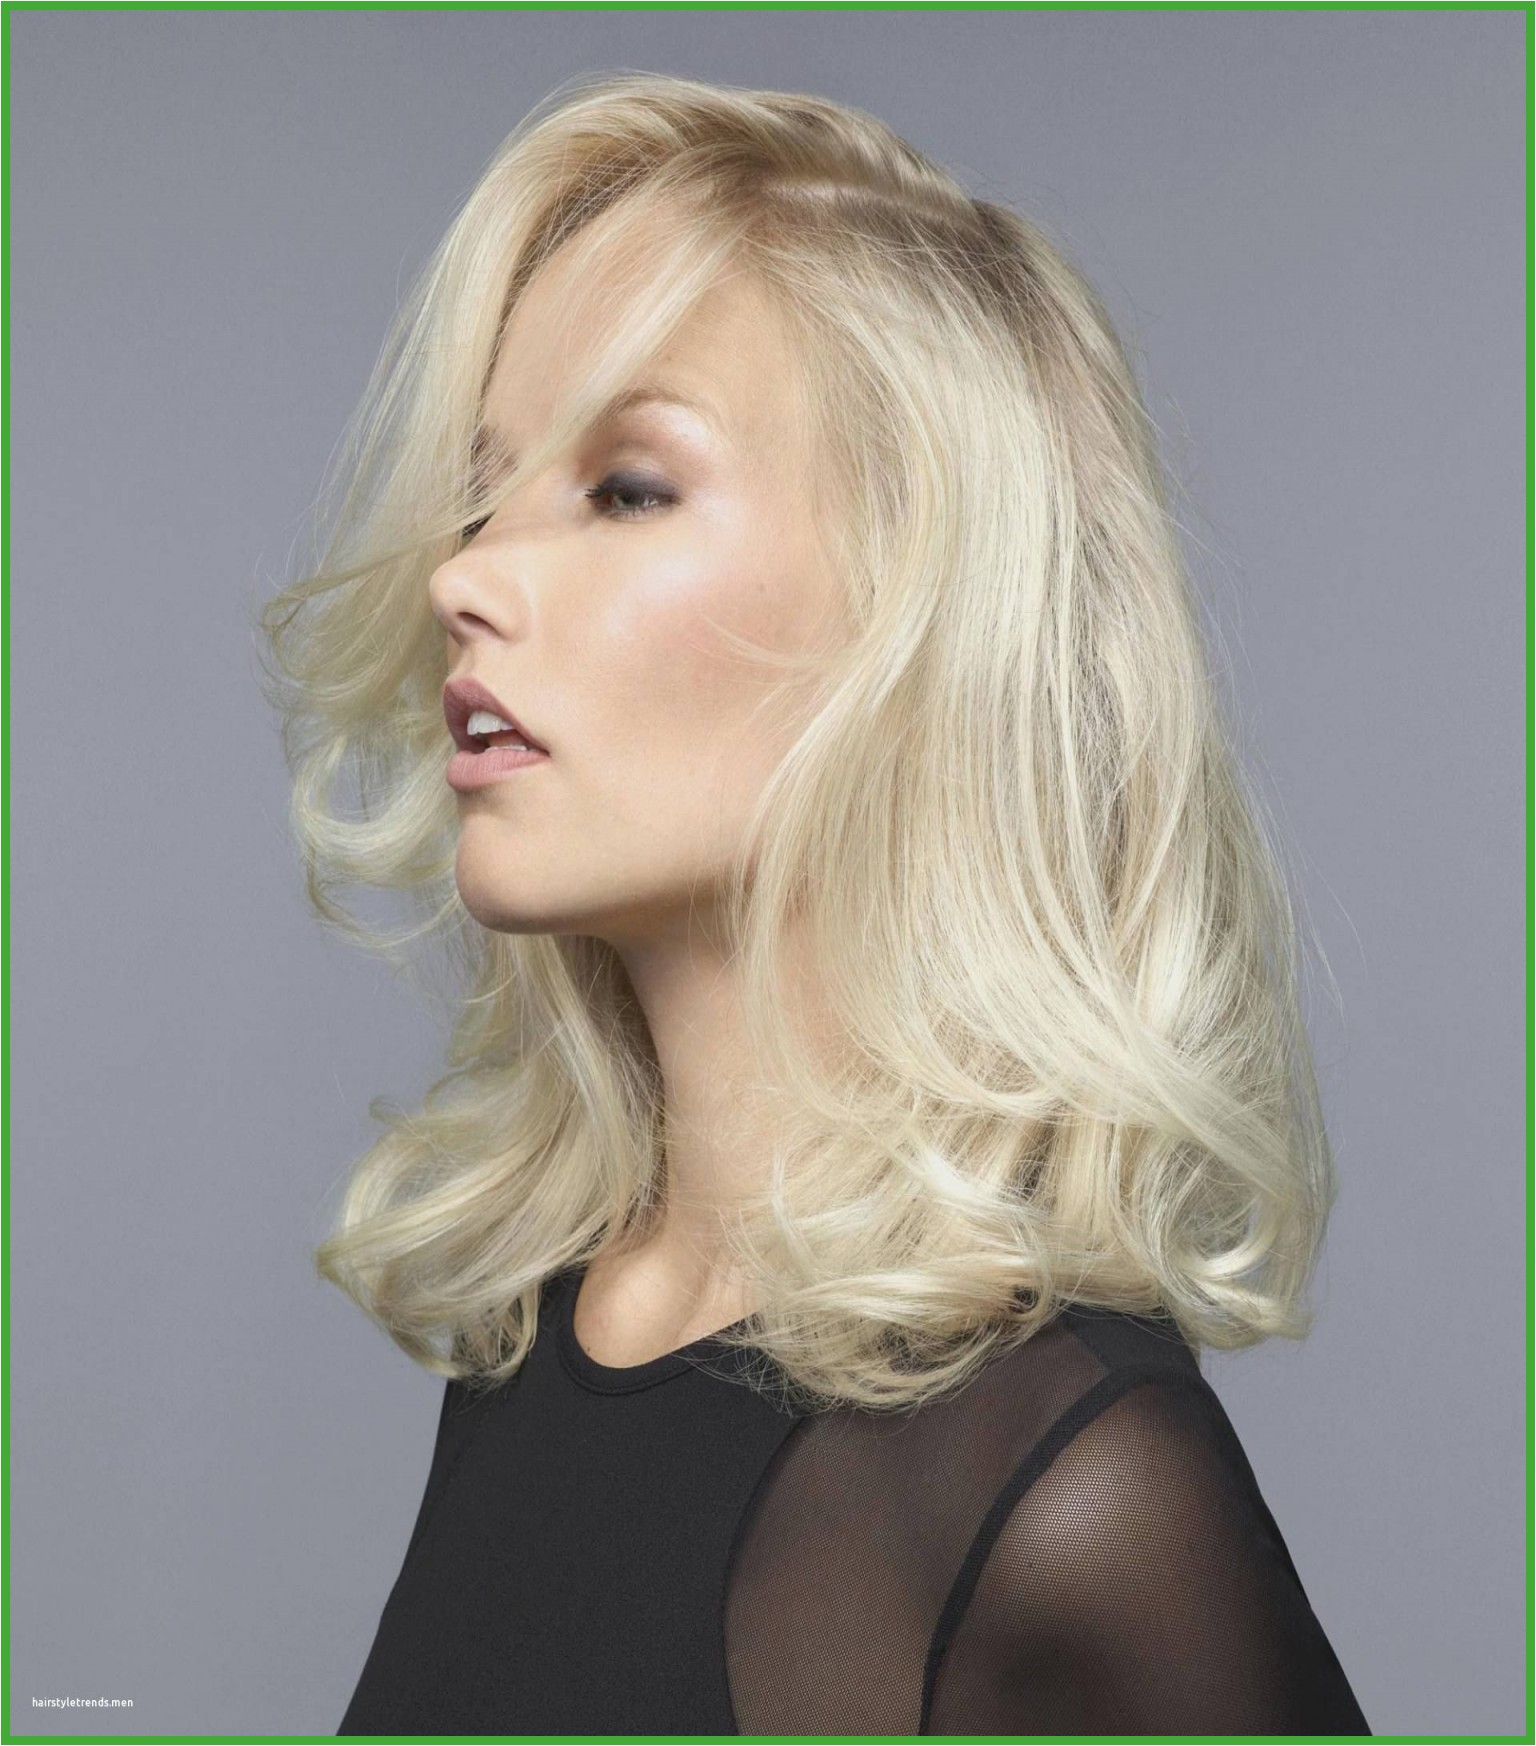 Medium Haircut Girls Extraordinary Hairstyles for Men Luxury Haircuts 0d 30 Best Hairstyles For Women Over